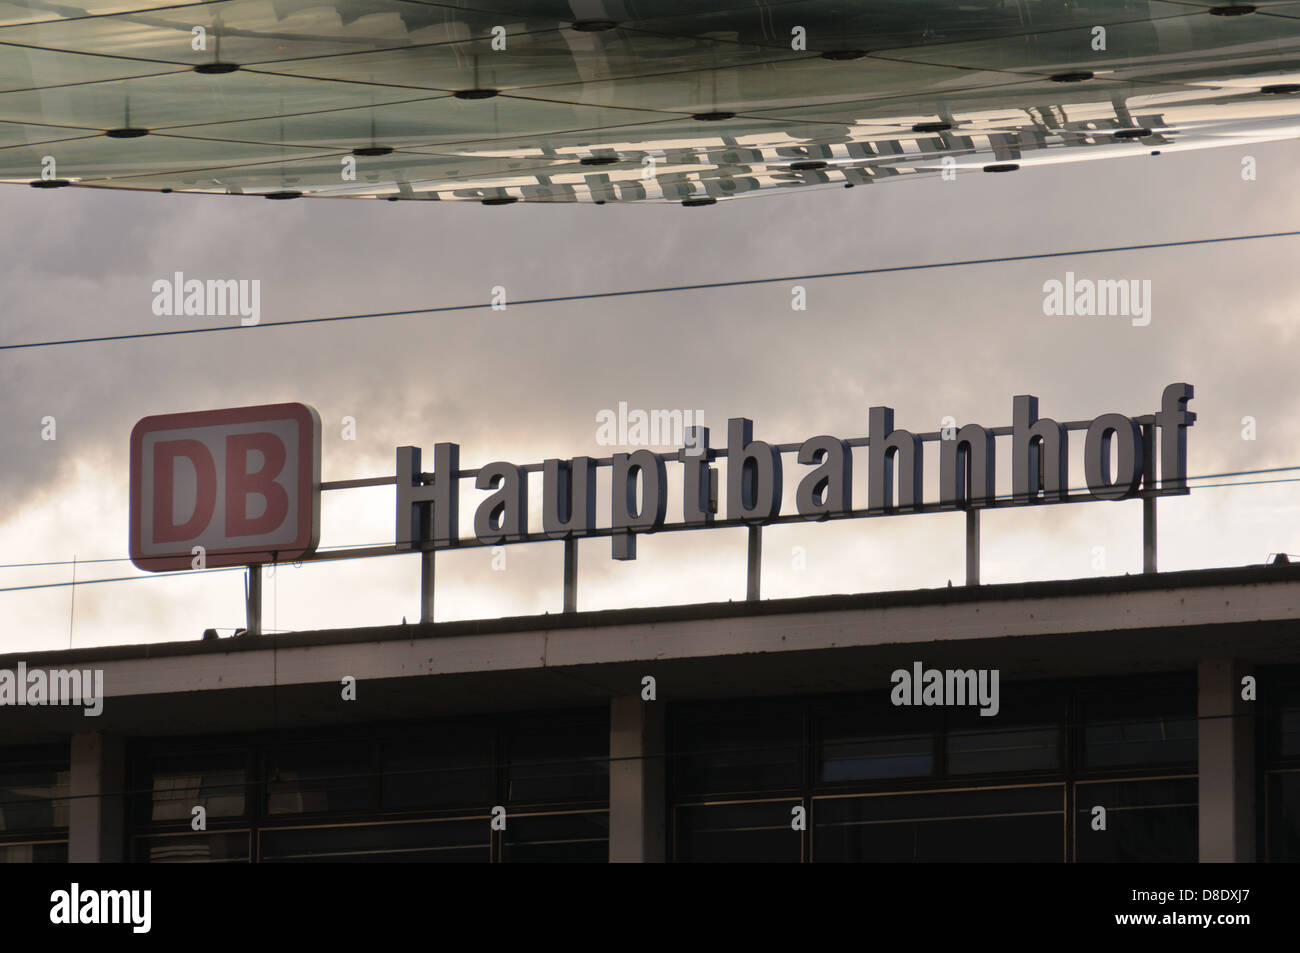 DB Hauptbahnhof sign on the roof of the main railway station of the German city Heilbronn Germany on a overcast - Stock Image